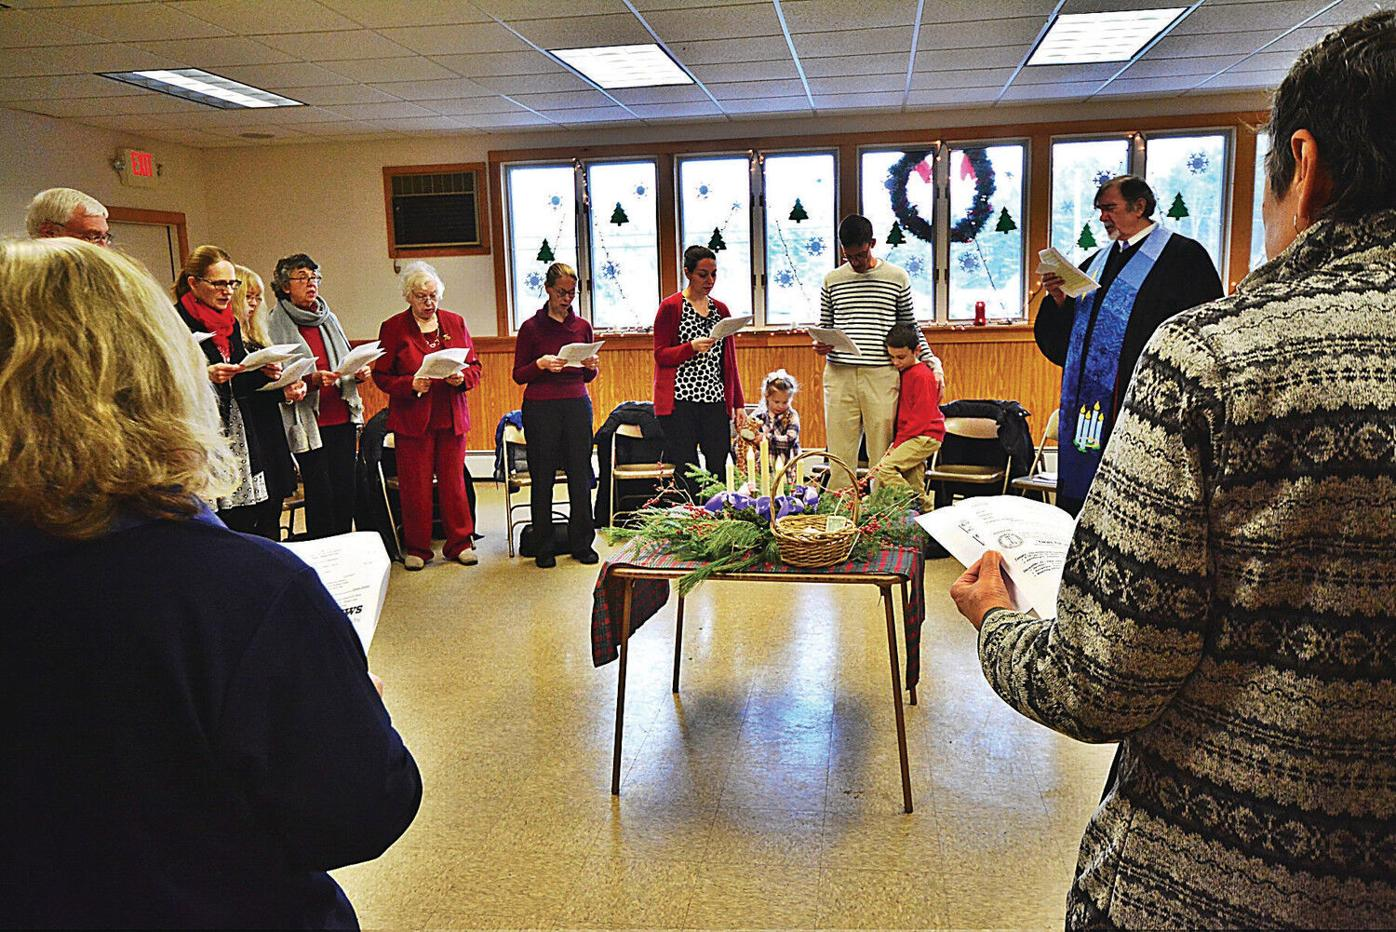 In Canaan, N.Y., a community rallies after Congregational Church fire